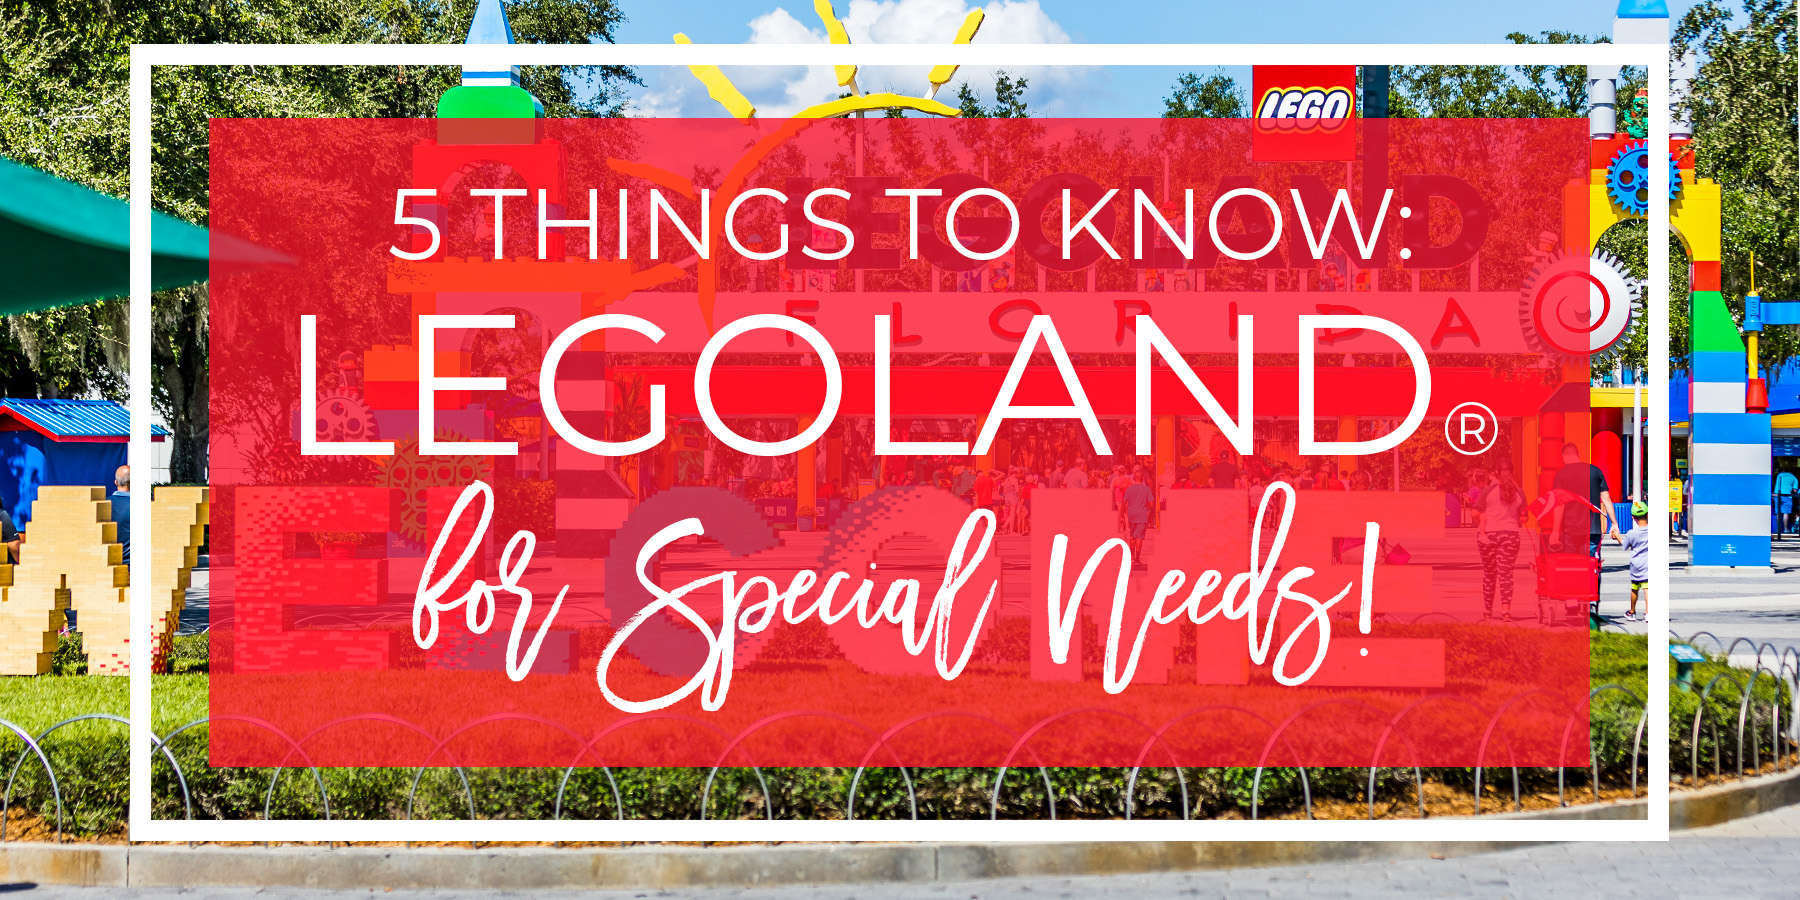 5 Things to Know Before Going to Legoland with your Special Needs kid! #legoland #legolandfl #specialneedslegoland #legospecialneeds #autismlegoland.jpg